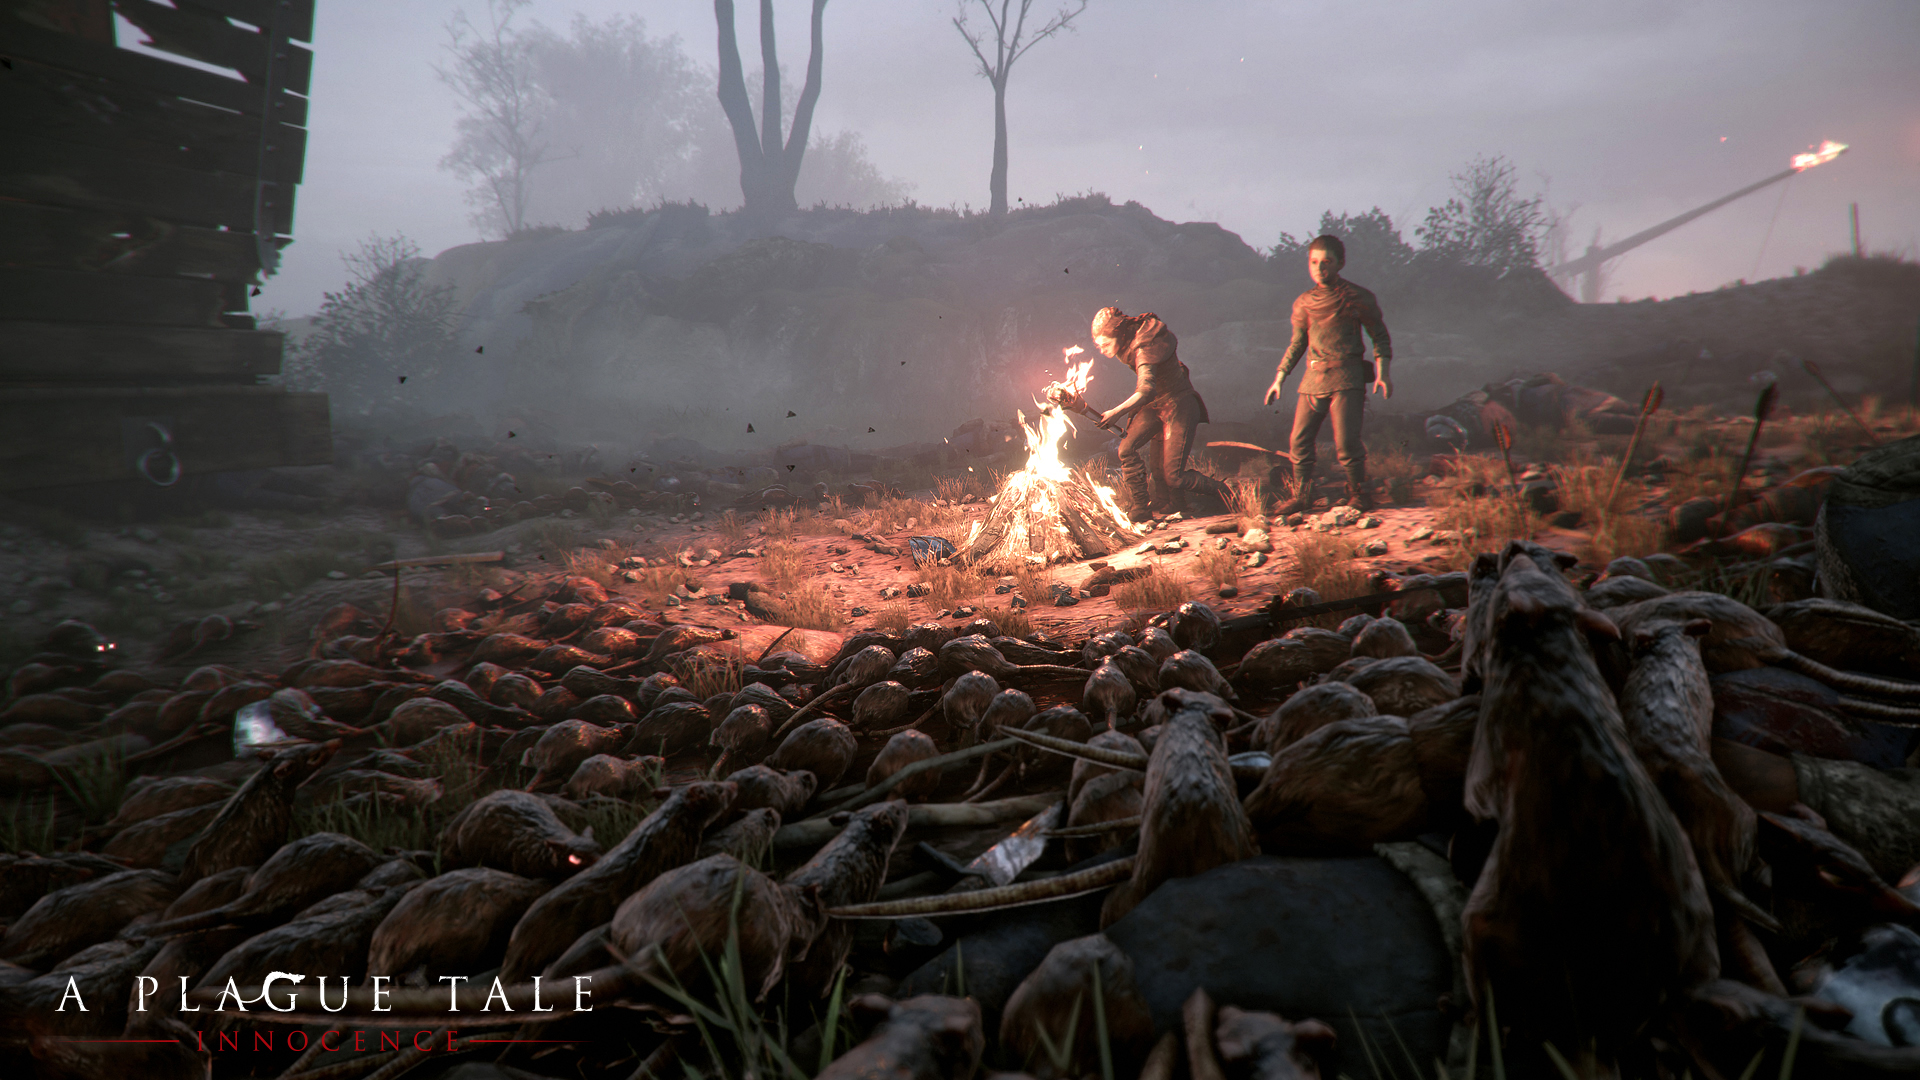 A_Plague_Tale-Innocence-03.jpg